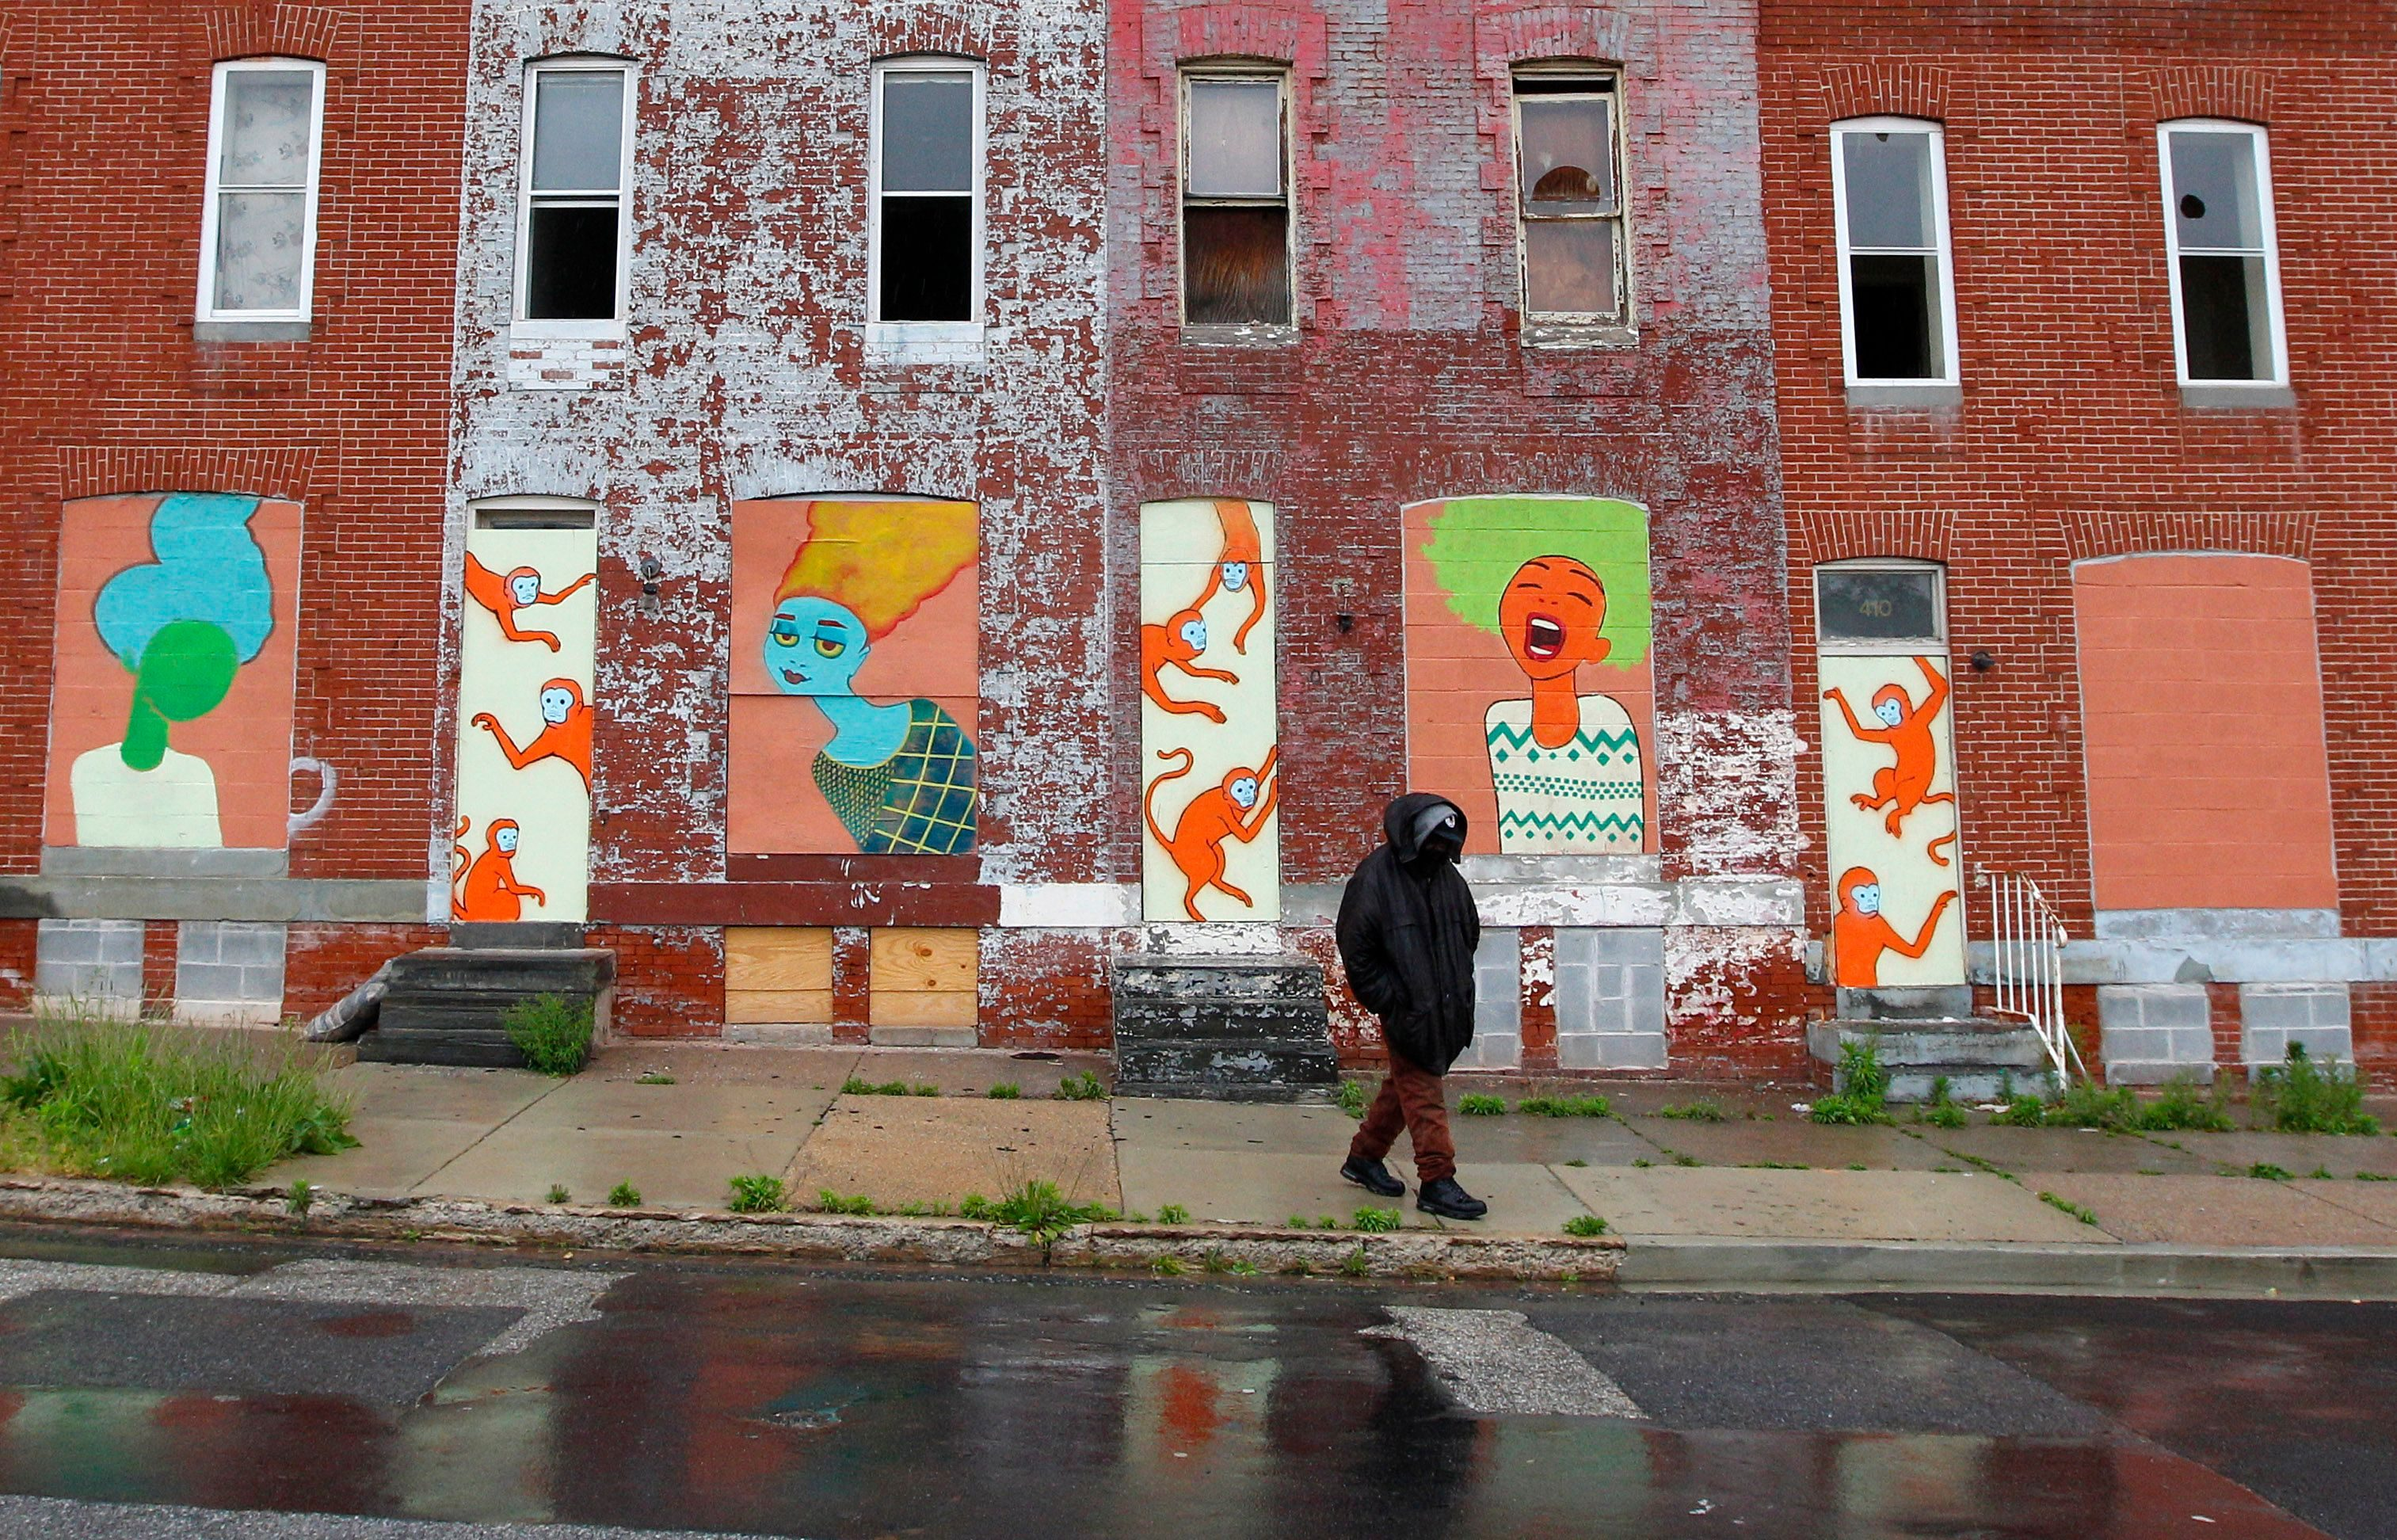 White fight has devastated areas like Baltimore.